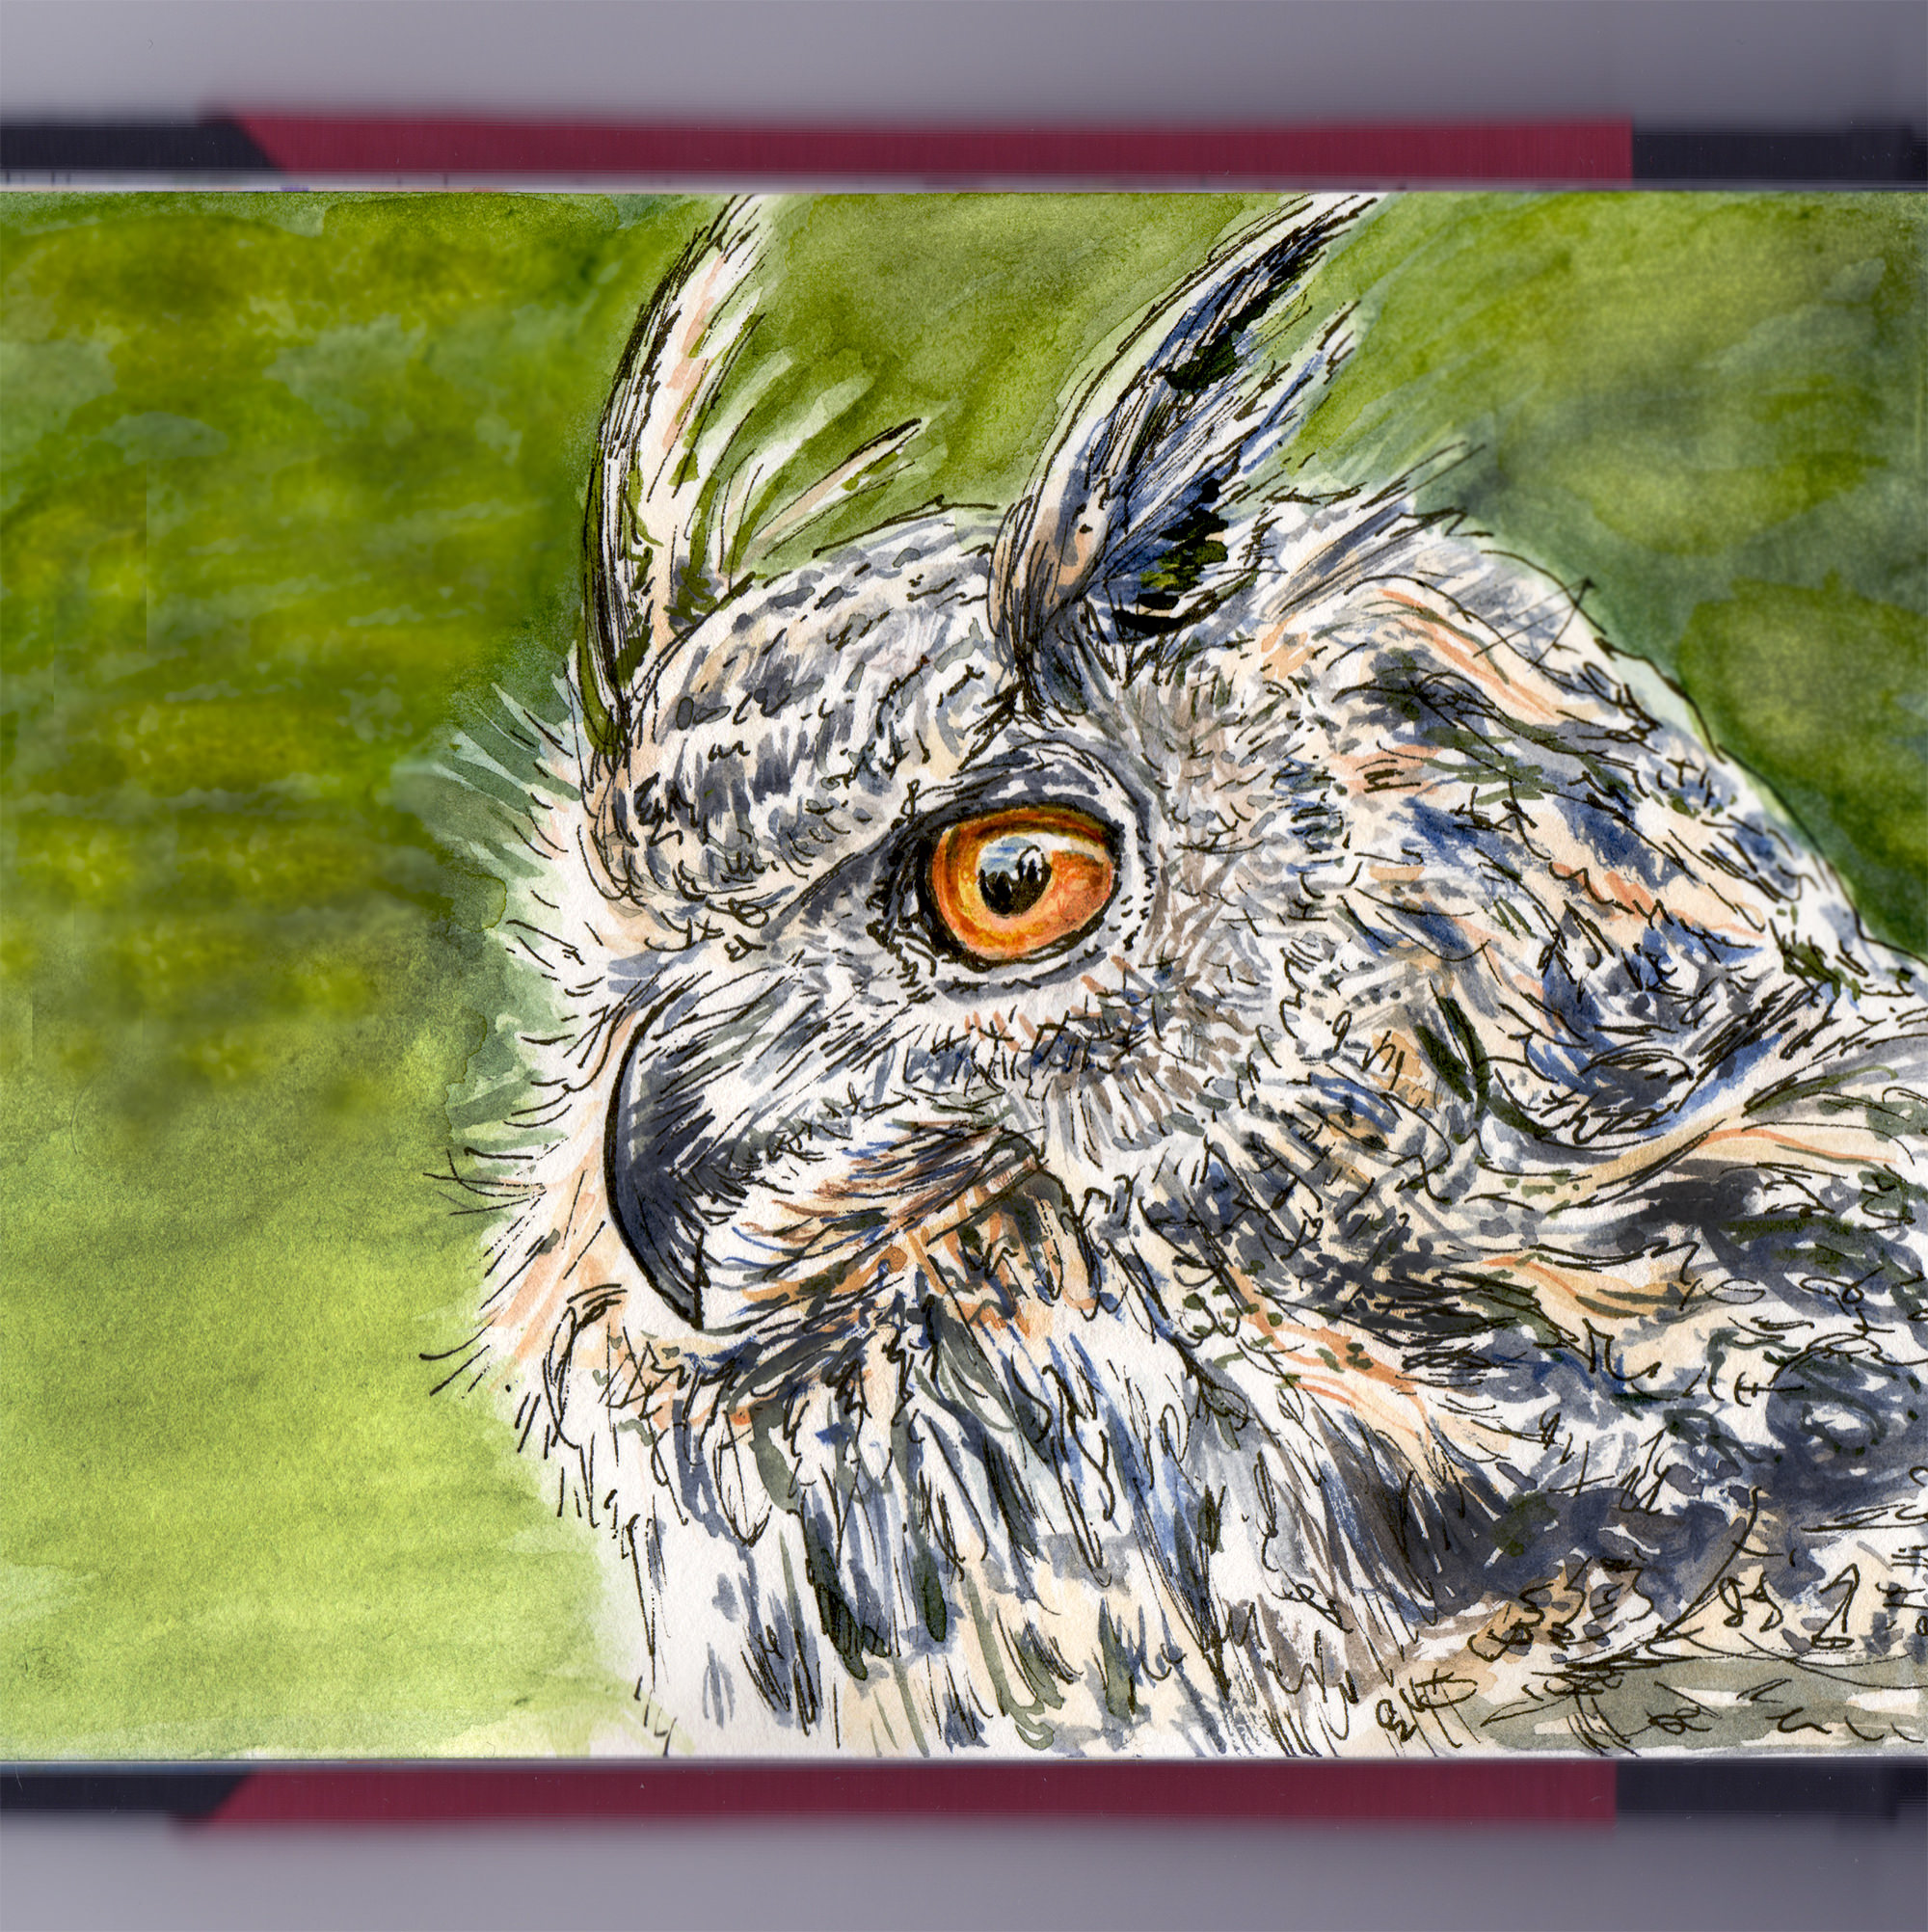 Day 27 - #WorldWatercolorGroup The Owl In The Cemetery Watercolor - #doodlewash